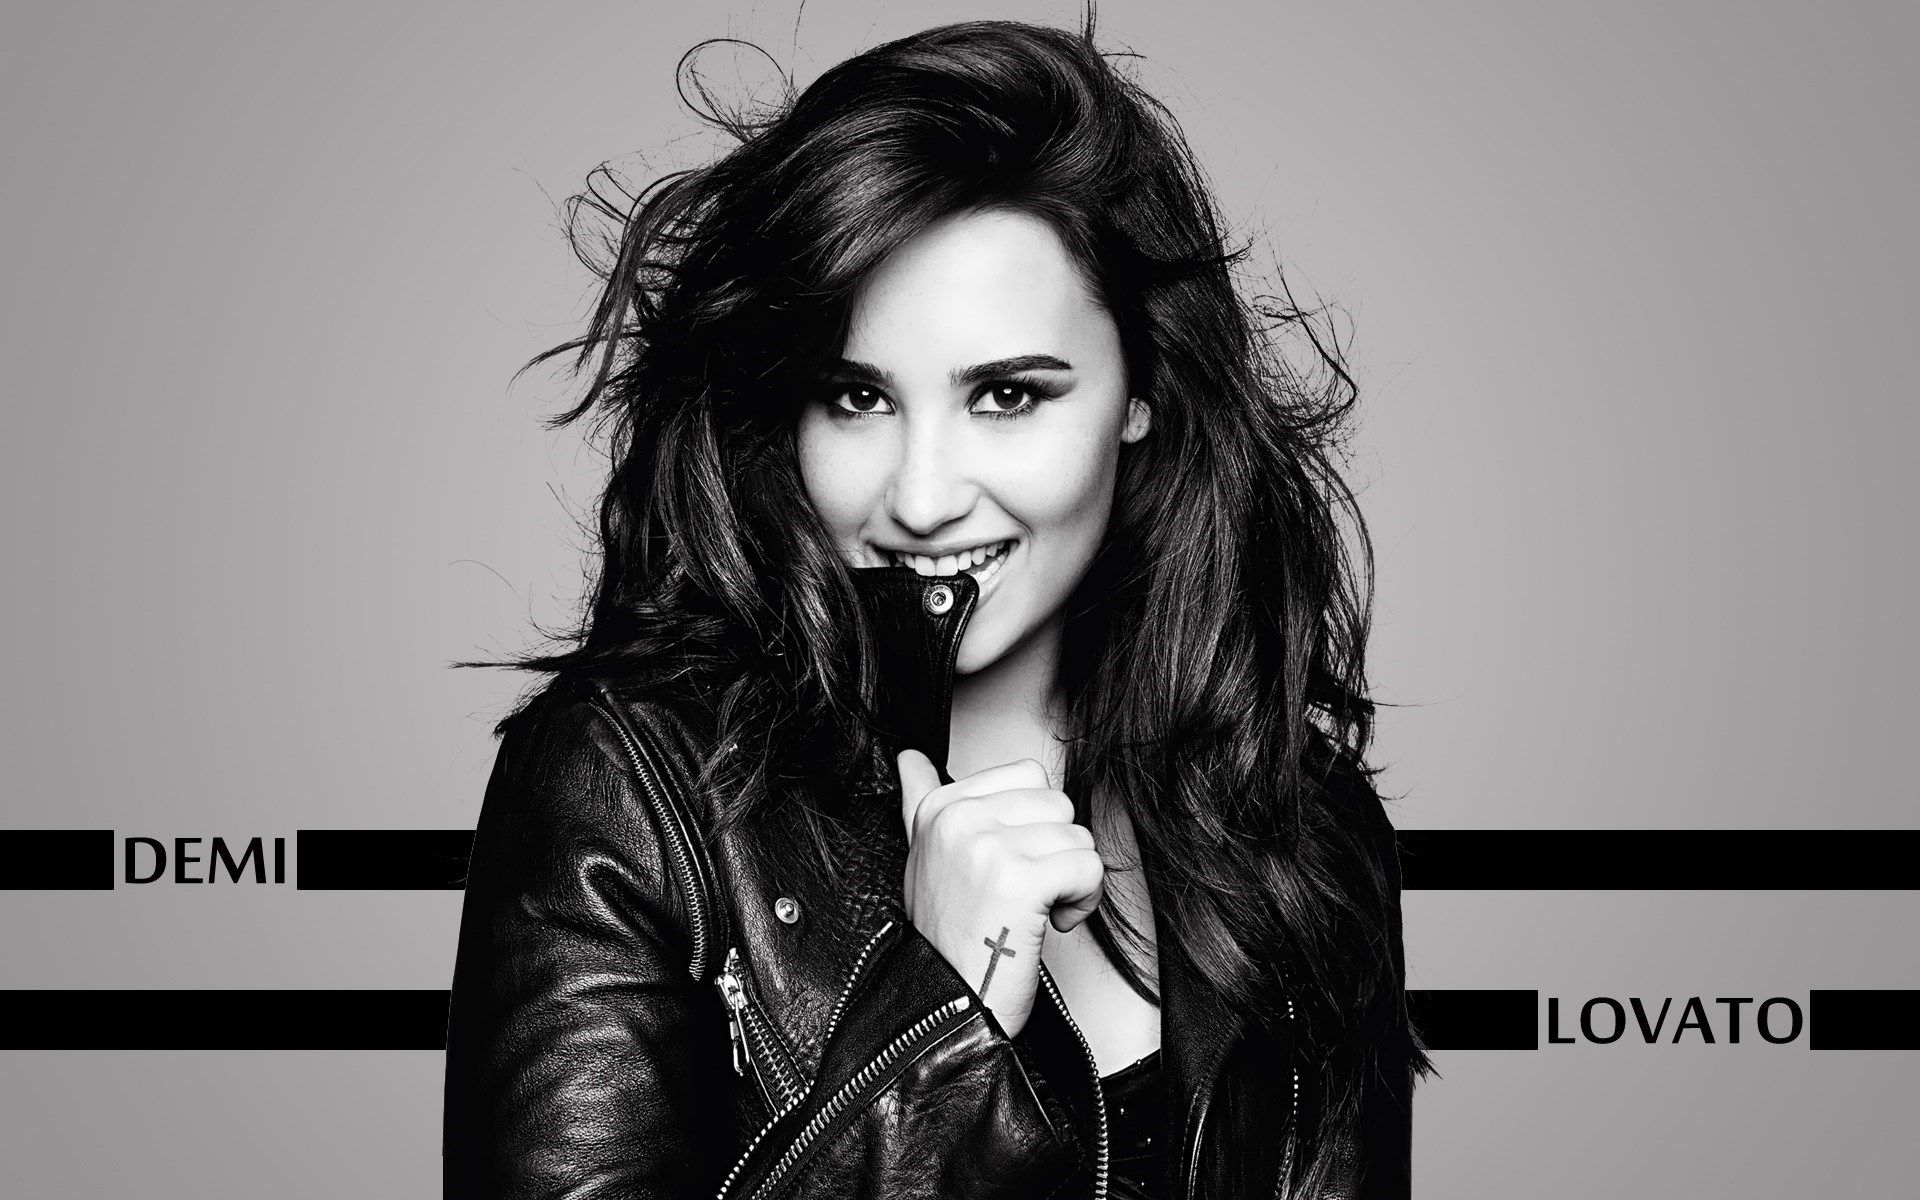 Demi Lovato Wallpapers HD 2015 1920x1200